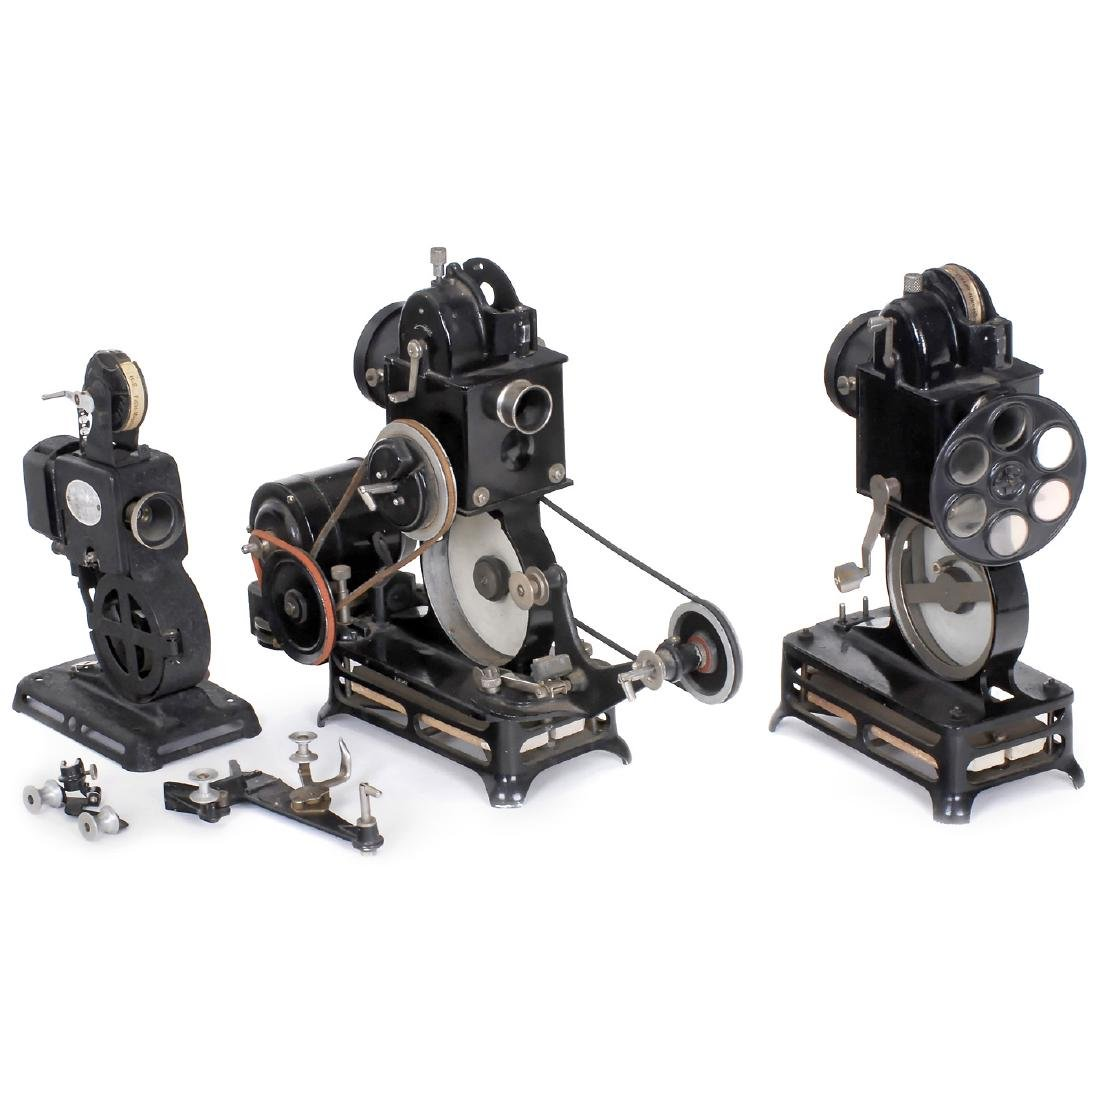 3 Movie Projectors for 9,5mm Film, c. 1924